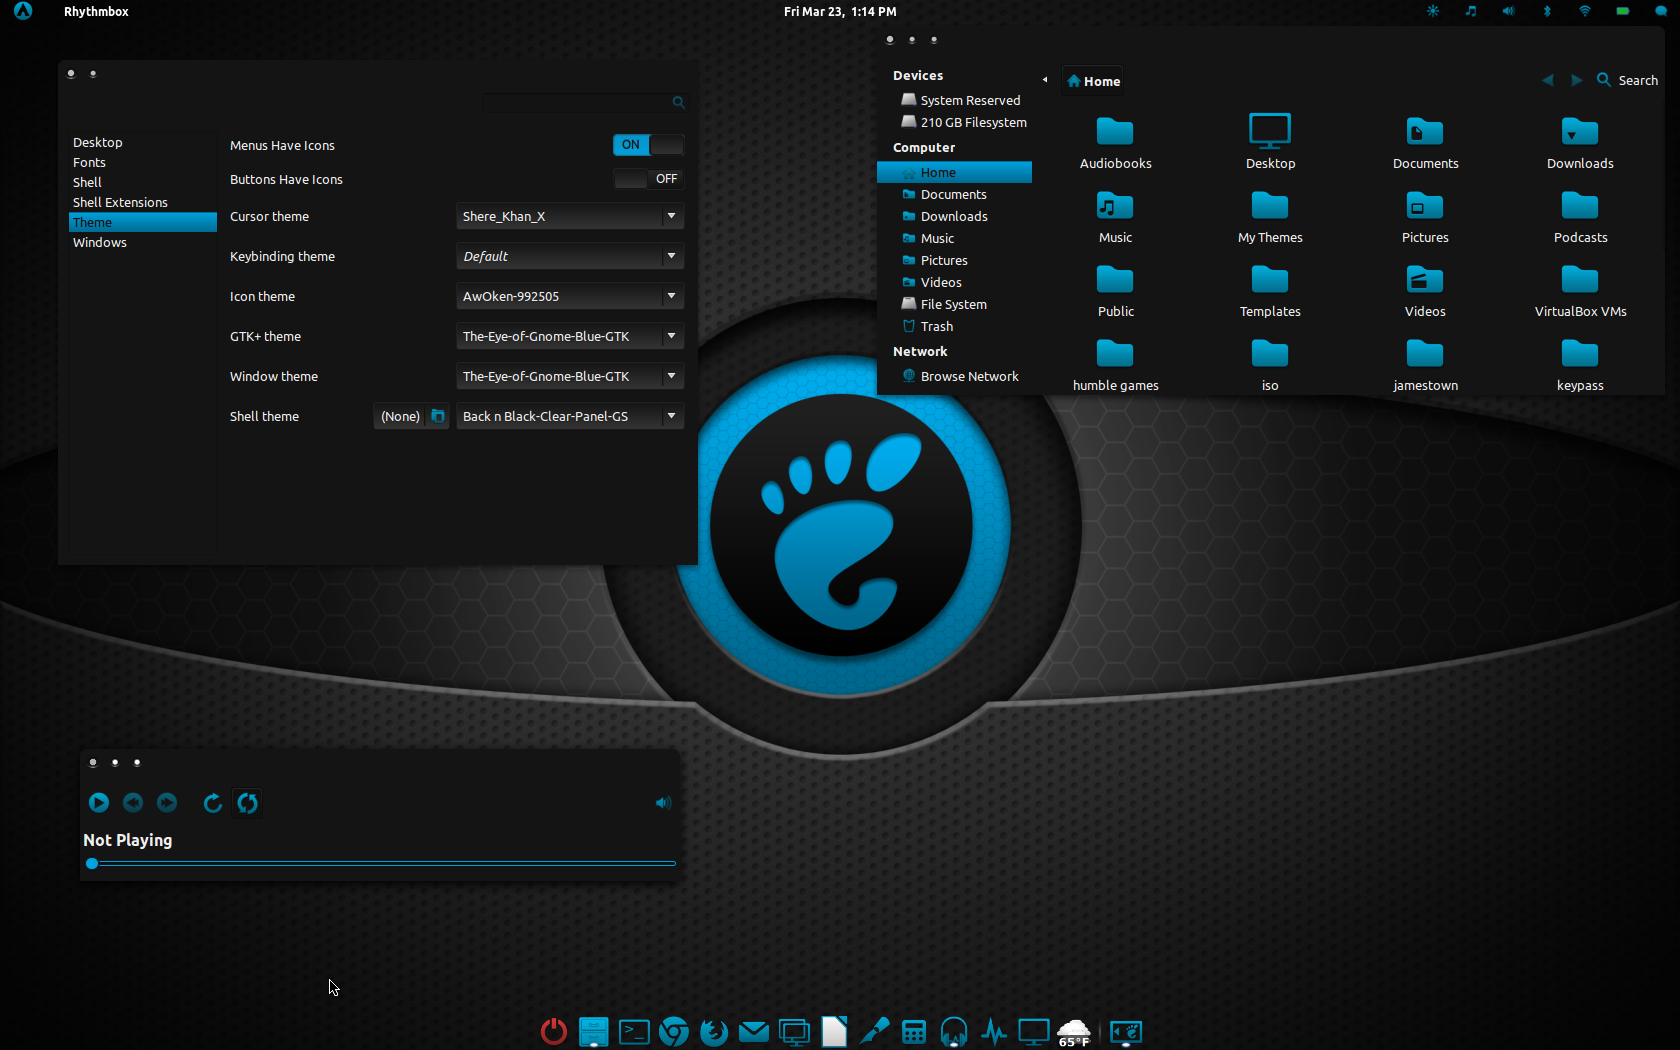 The Eye of Gnome Blue GTK